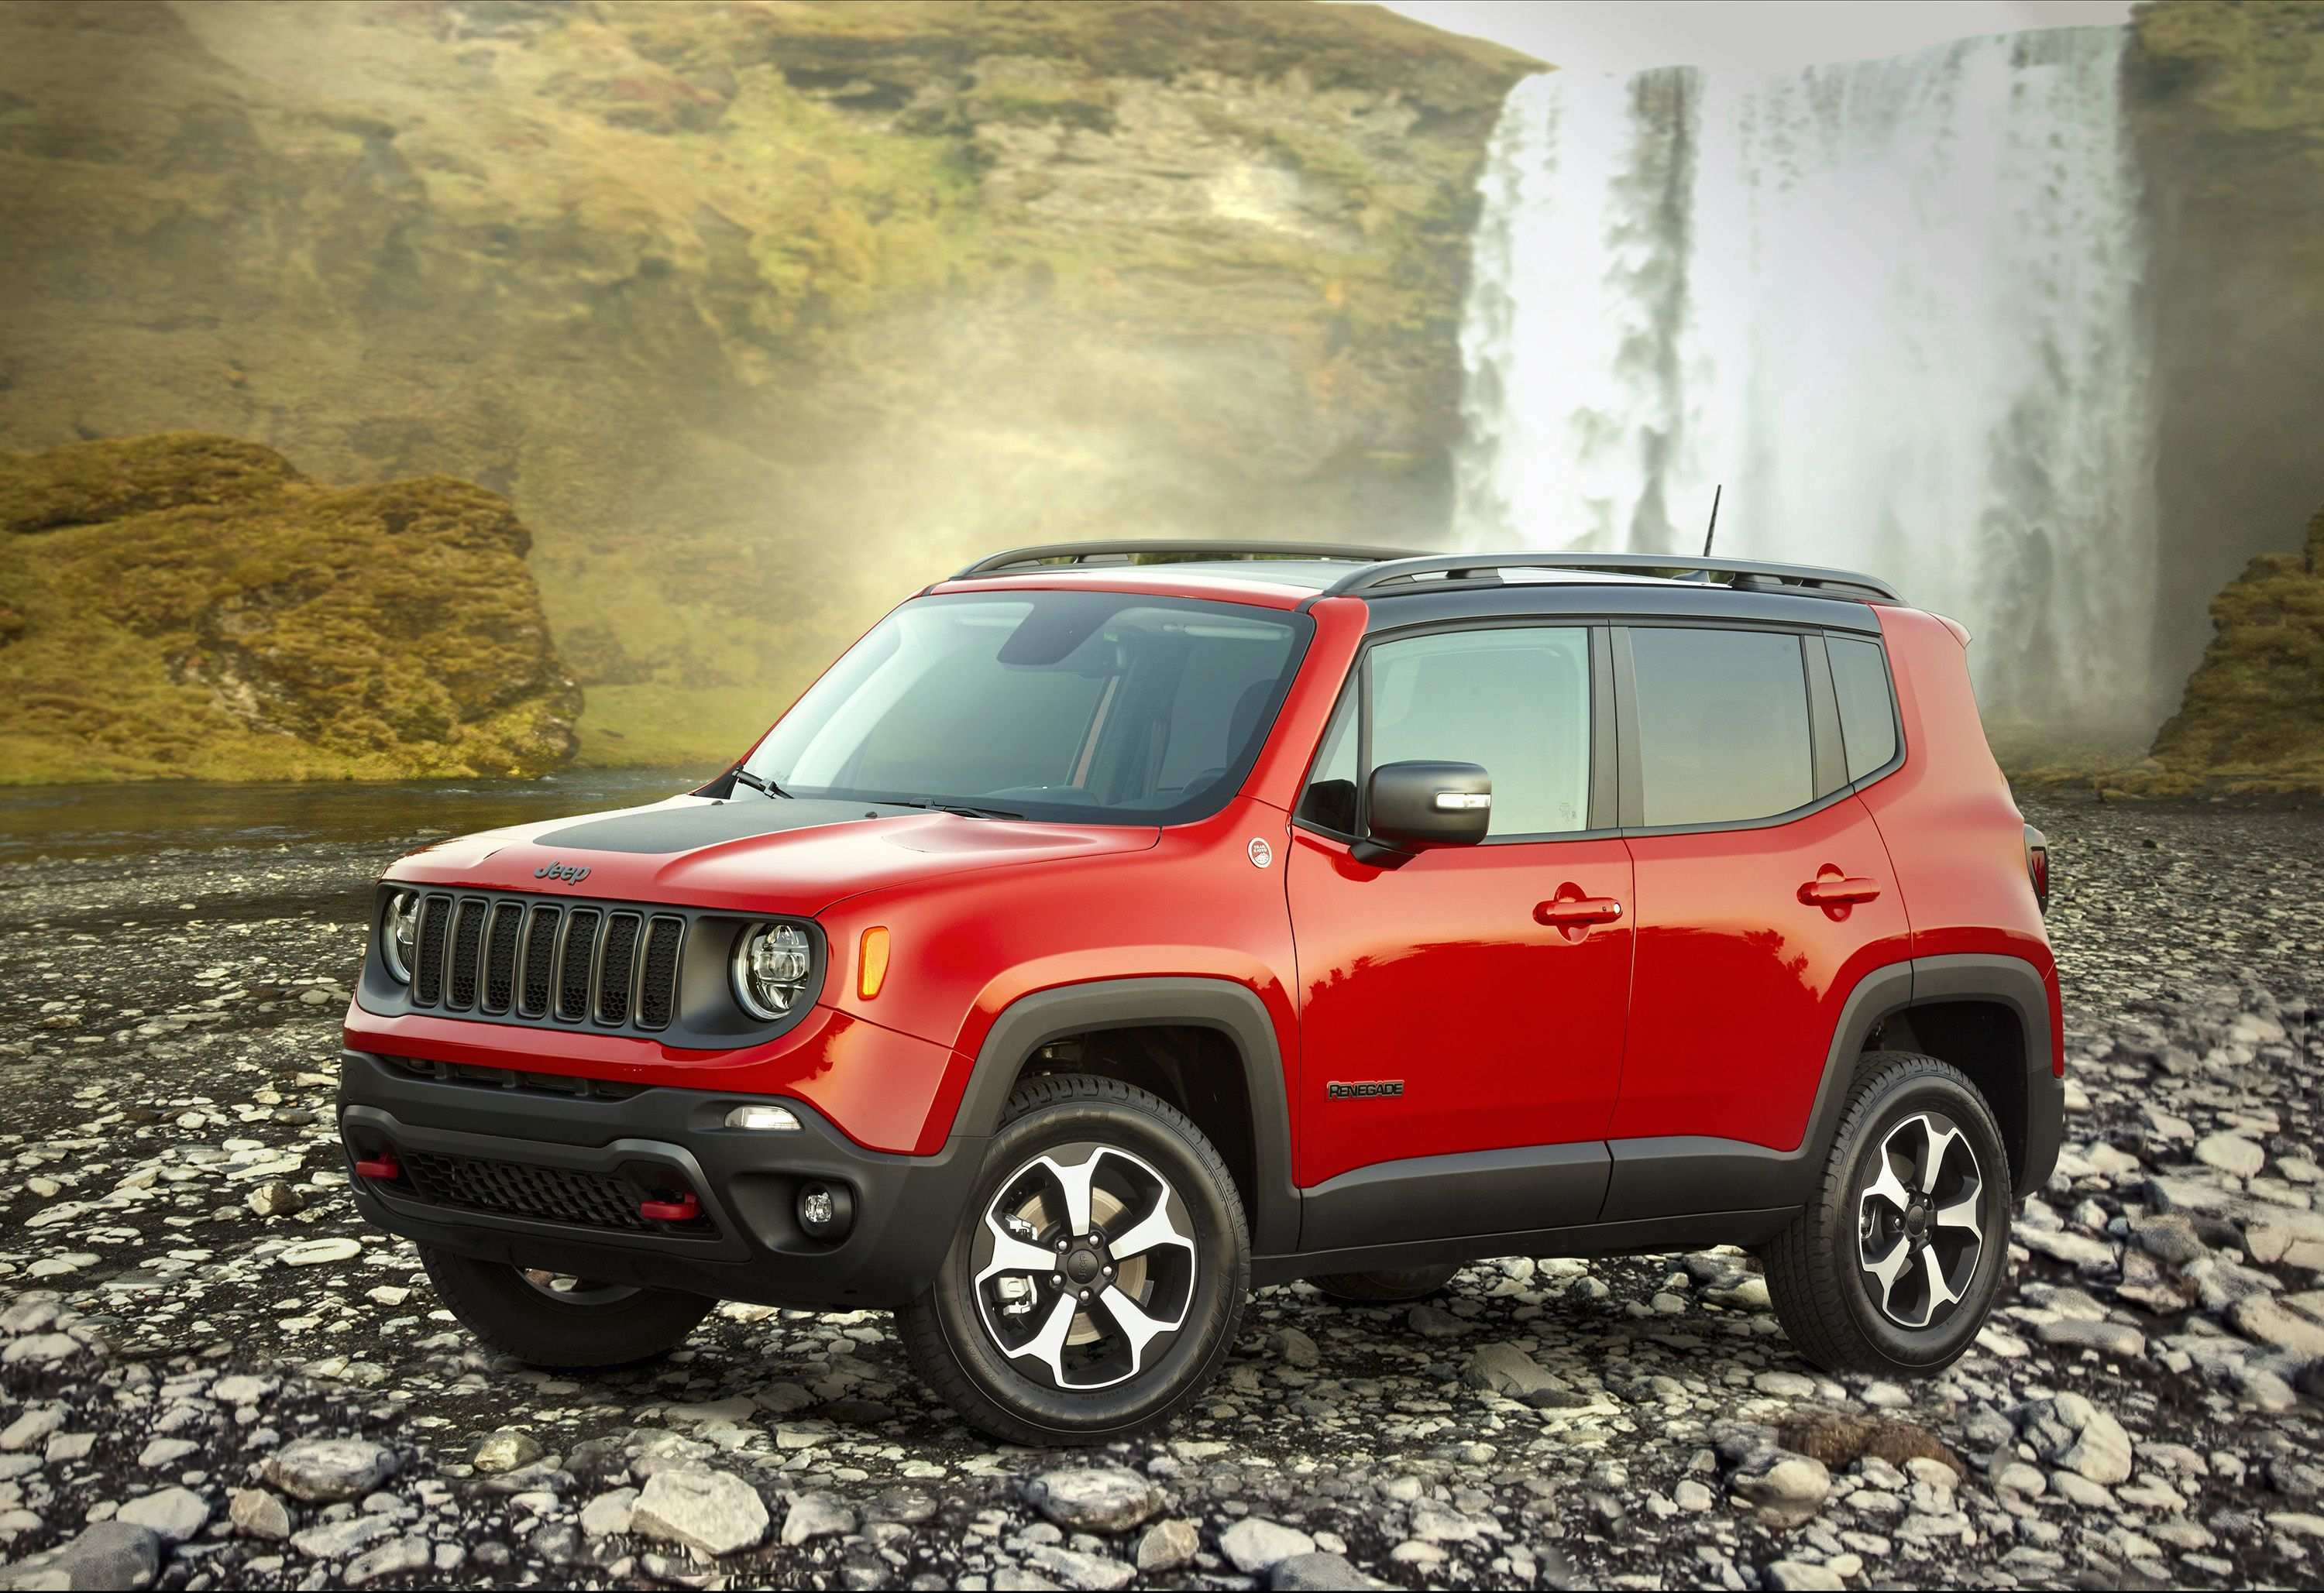 61 All New 2019 Jeep Renegade Review Performance And New Engine